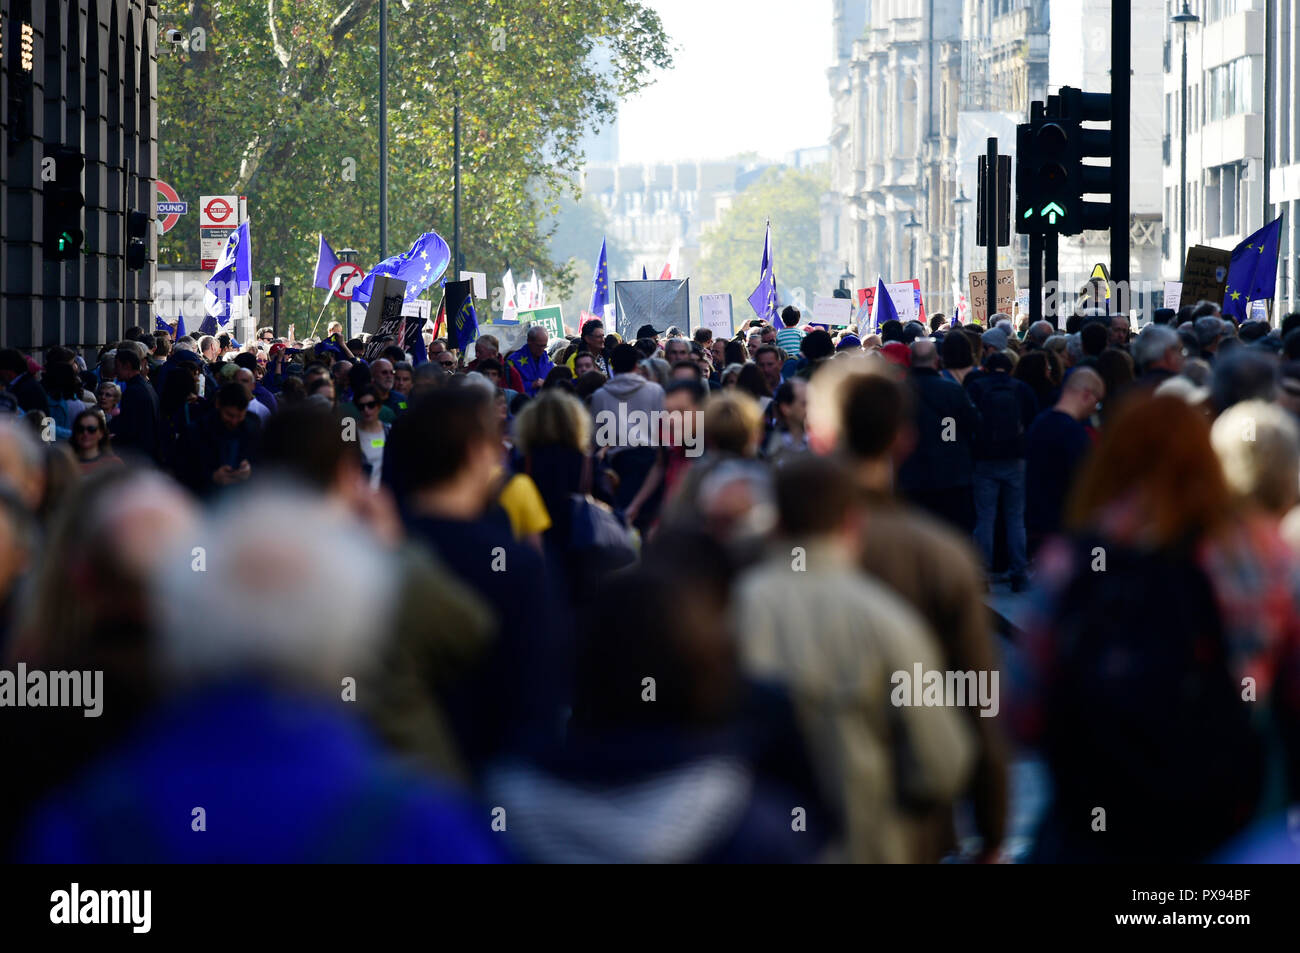 London, UK. 20 October, 2018. The People's Vote March takes place in central London, from Park Lane at midday to Parliament Square, attracting huge crowds of anti-Brexit activists demanding another referendum the final Brexit deal. Credit: Malcolm Park/Alamy Live News. - Stock Image